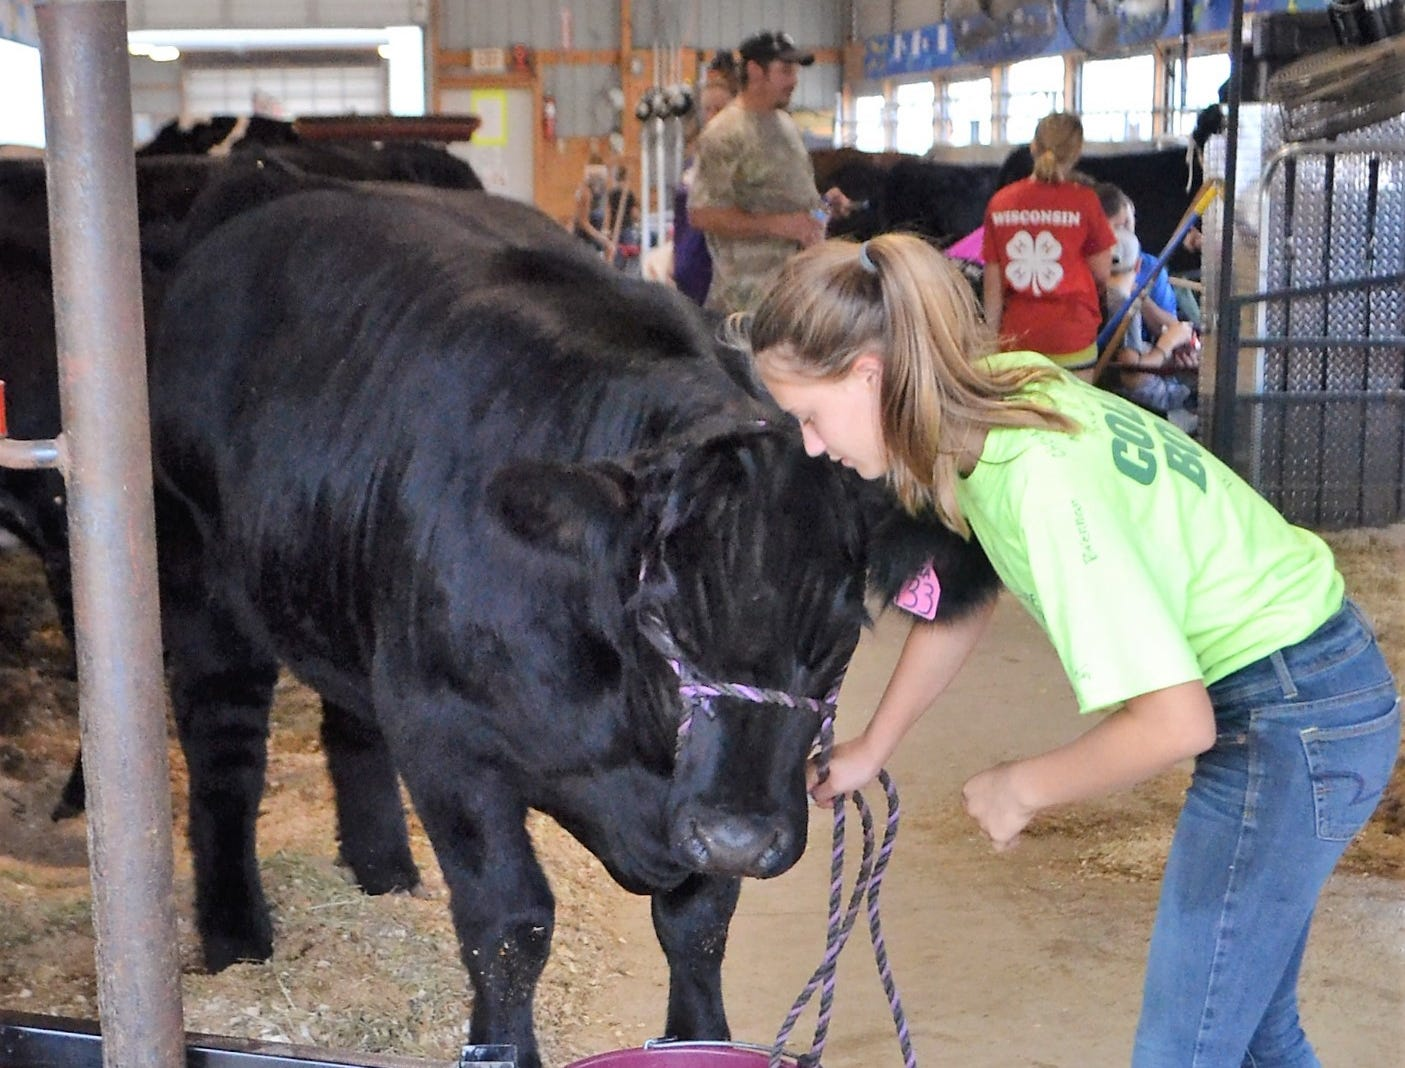 Megan Wagner, 13, of Suring, a member of Northern Riders 4-H Club, leads a club members's cow for a drink at the Oconto County Fair on Thursday, Aug. 16.